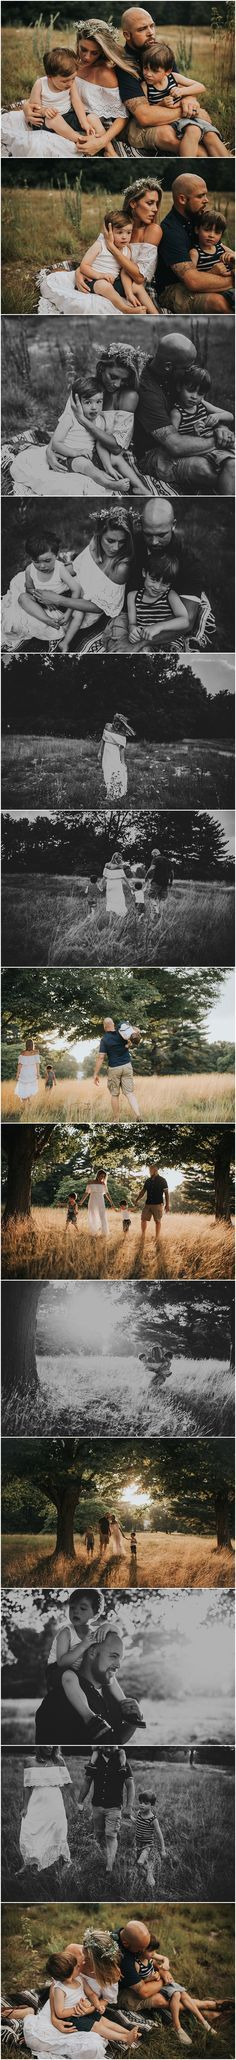 Massachusetts Family Photographer: Sarah Driscoll Photography-- bohemian outdoor family photoshoot